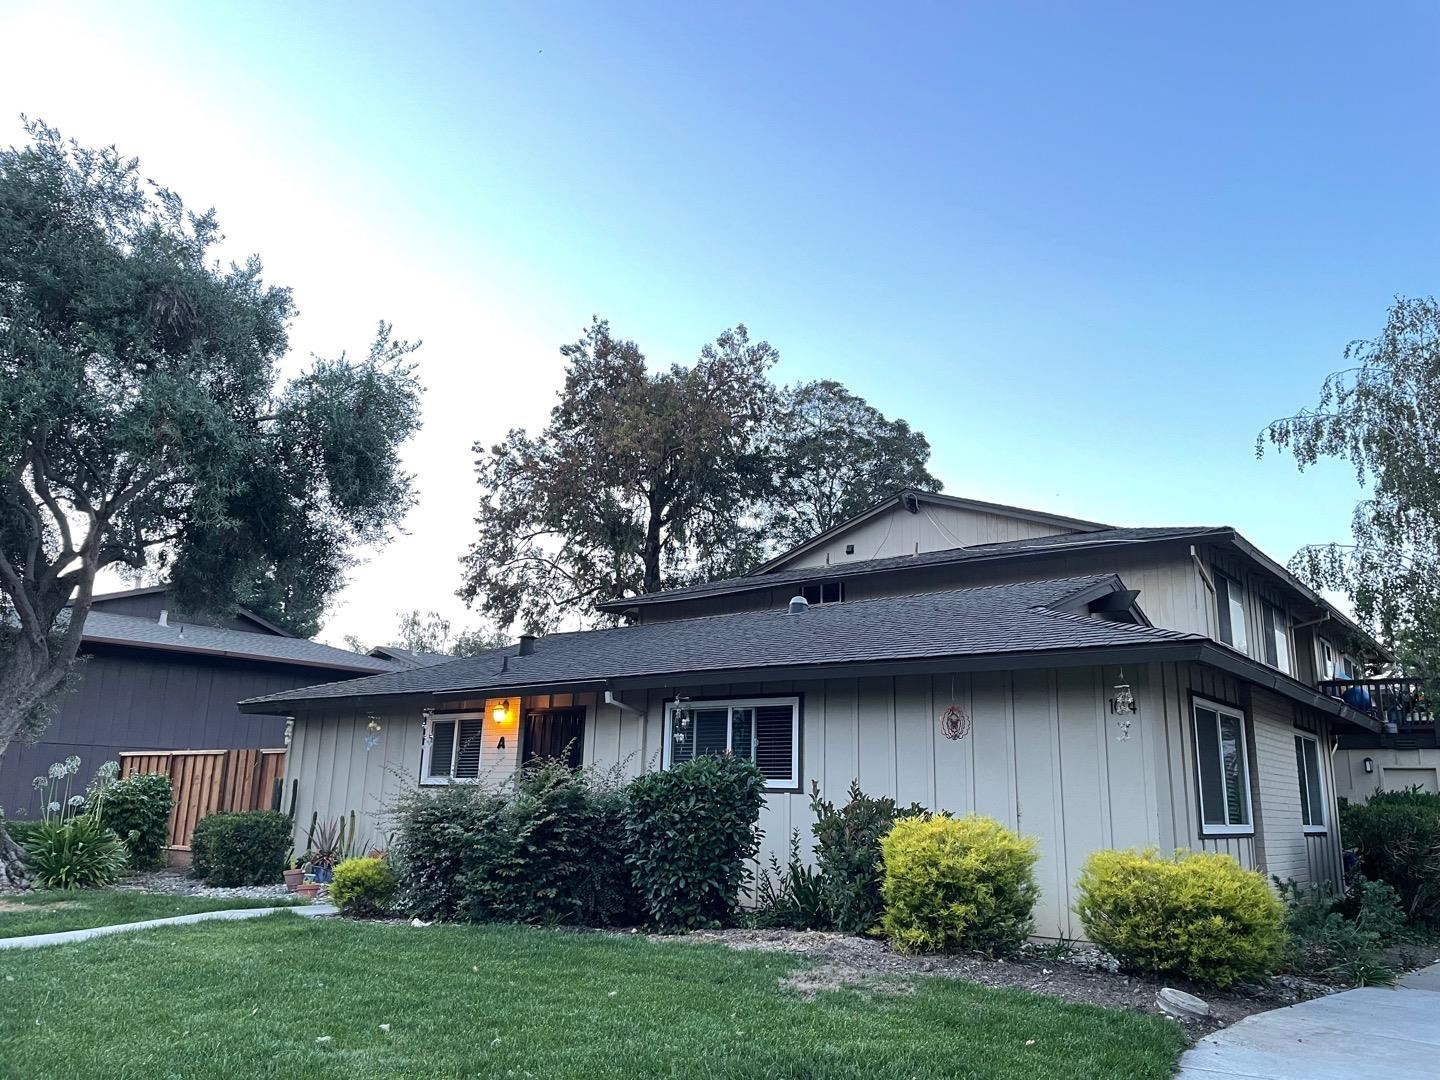 Photo for 104 East Middlefield Road #A, MOUNTAIN VIEW, CA 94043 (MLS # ML81861619)